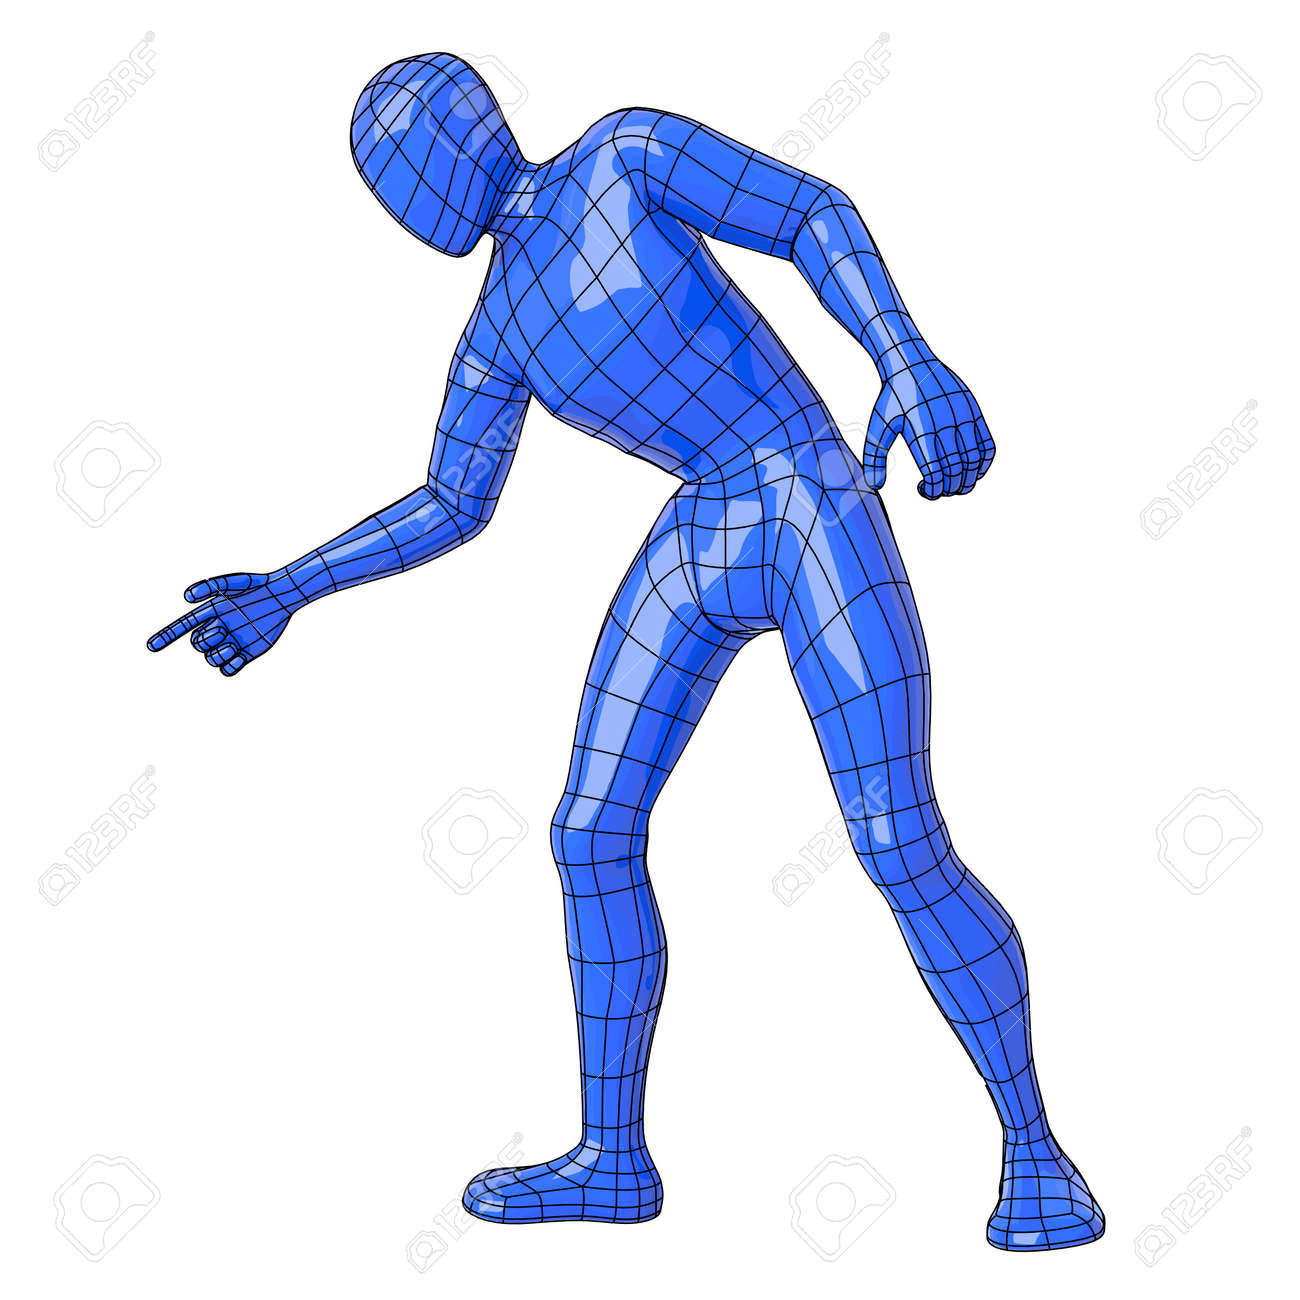 futuristic wireframe human figure pointing down vector illustration